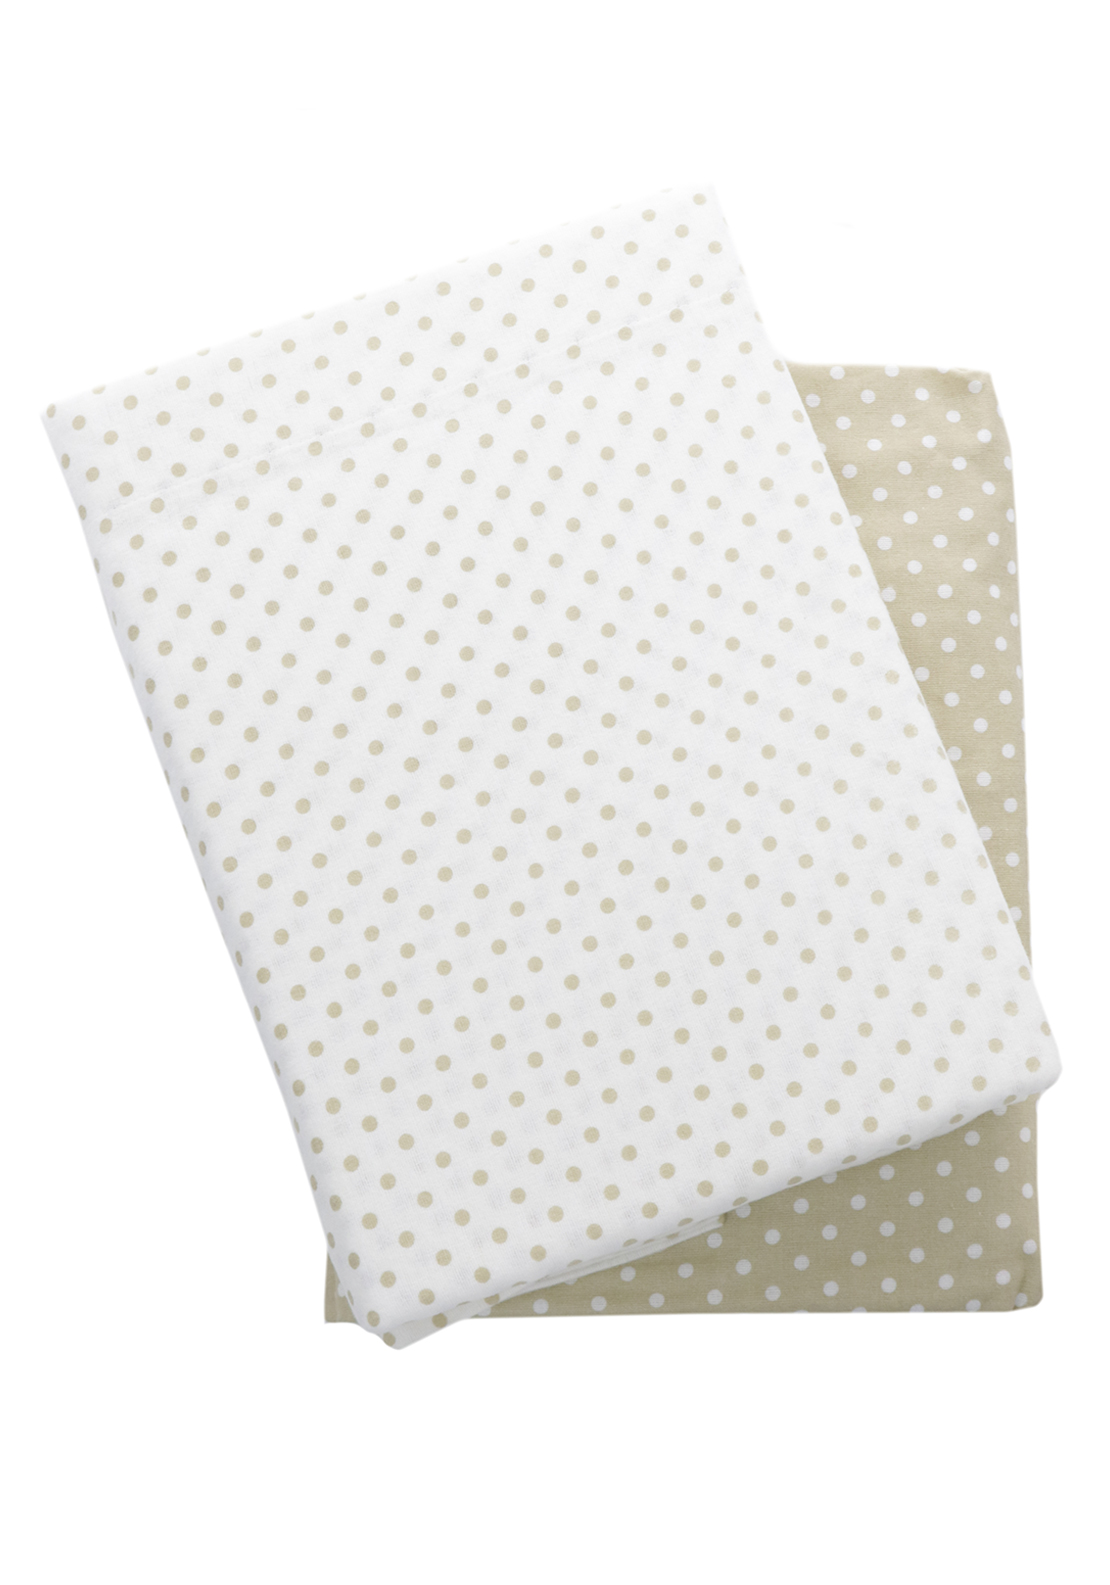 Loomcraft Dots Wheat Flannelette Sheet Set, Cream